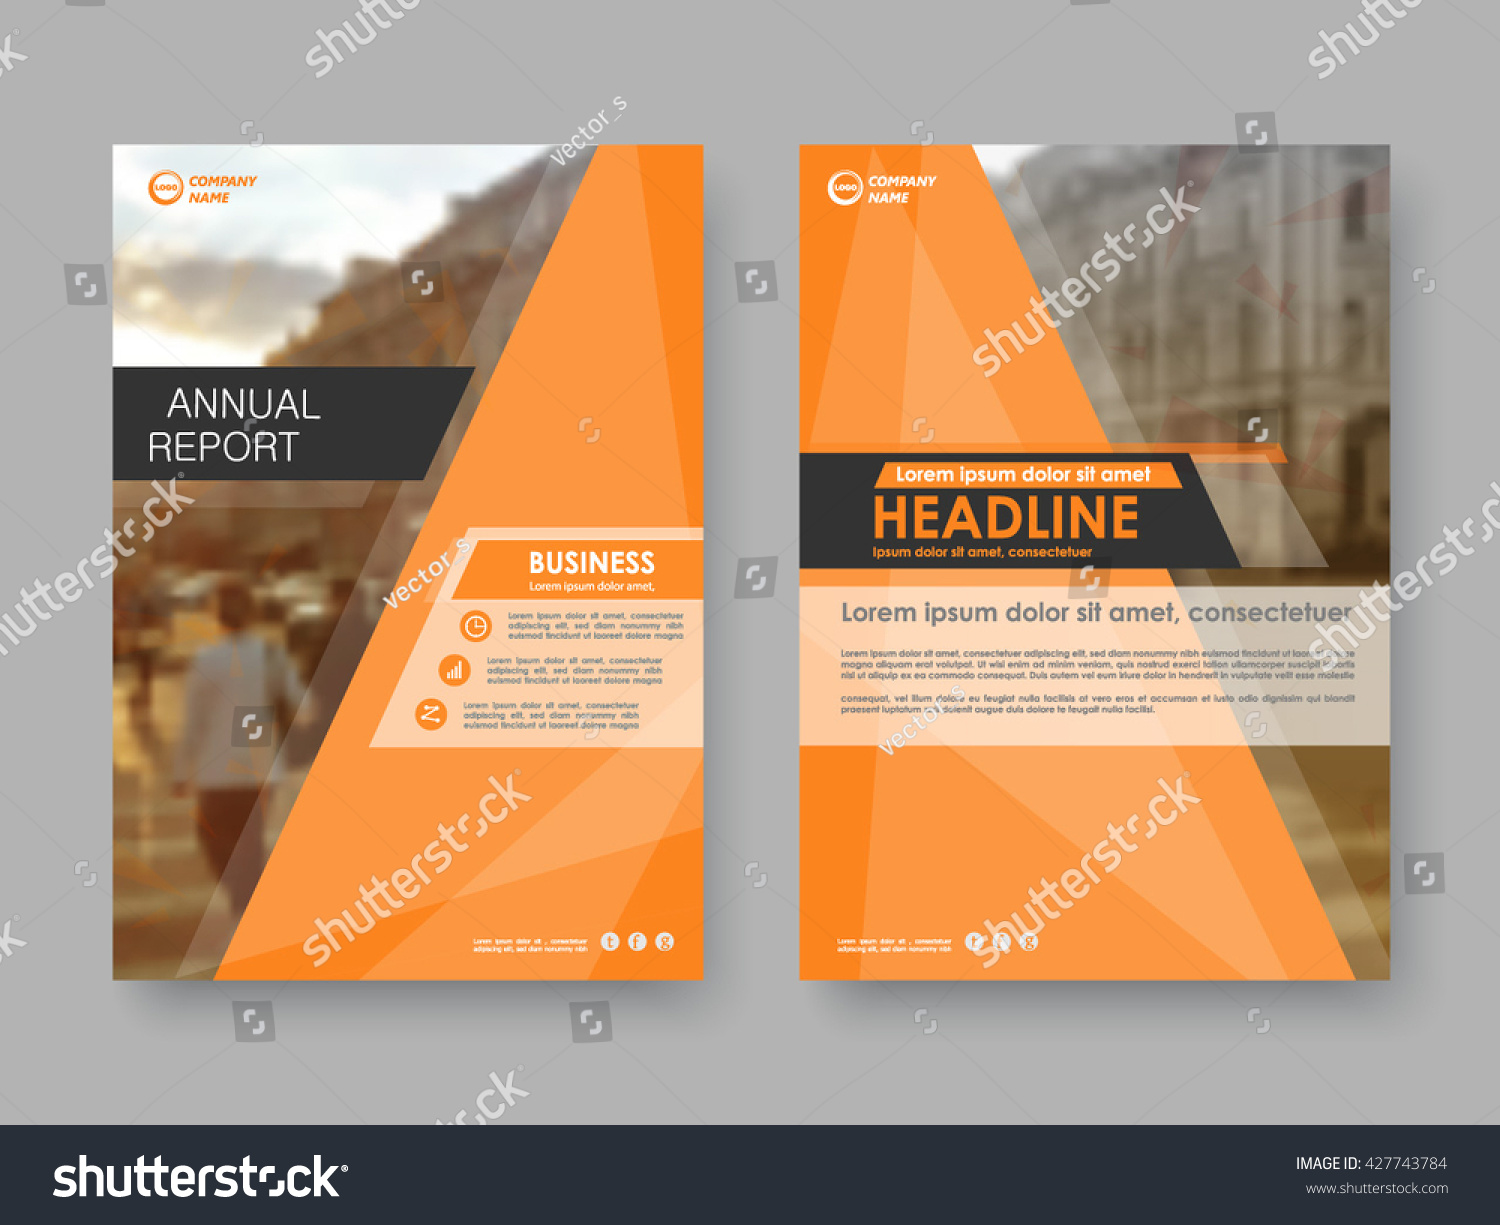 Annual report flyer presentation brochure Front page report book cover layout design Design layout template in A4 size Abstract orange cover templates